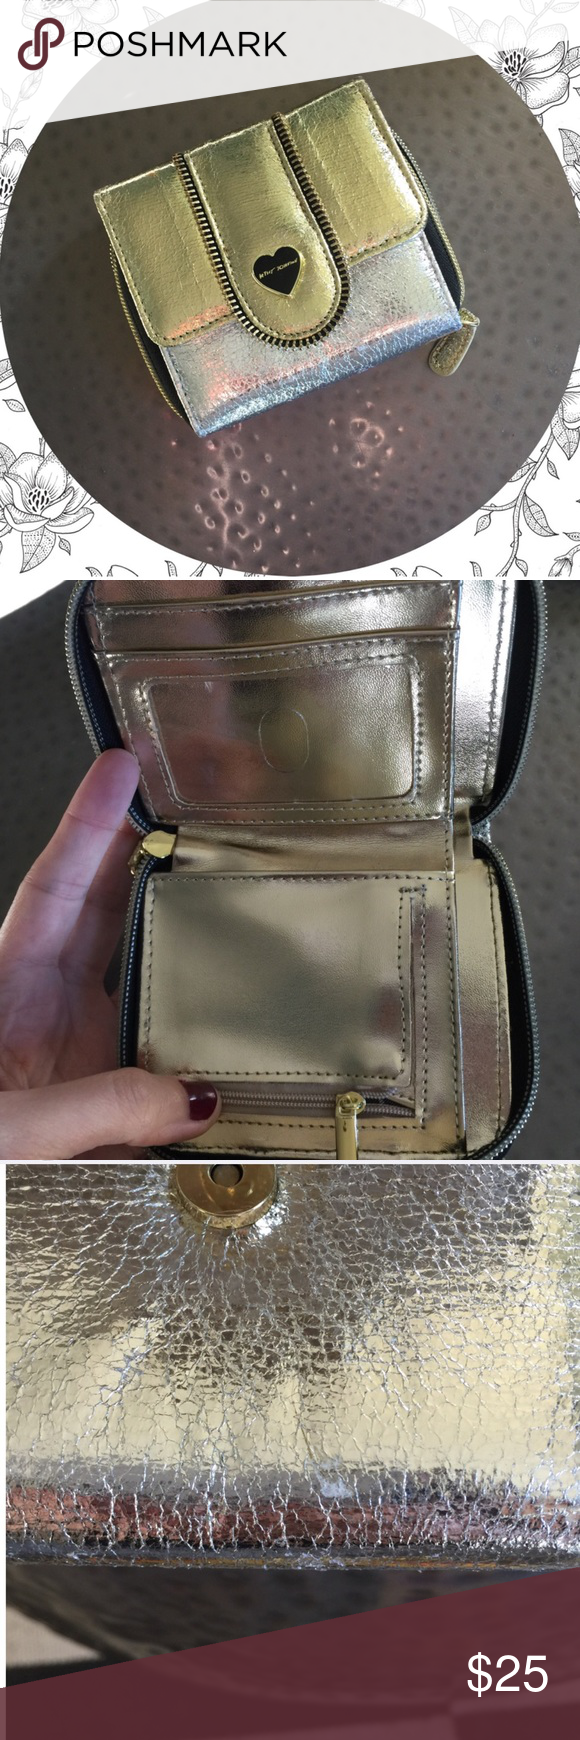 Betsey Johnson wallet Gently used. Small scuff as seen in last picture. NO TRADES Betsey Johnson Bags Wallets